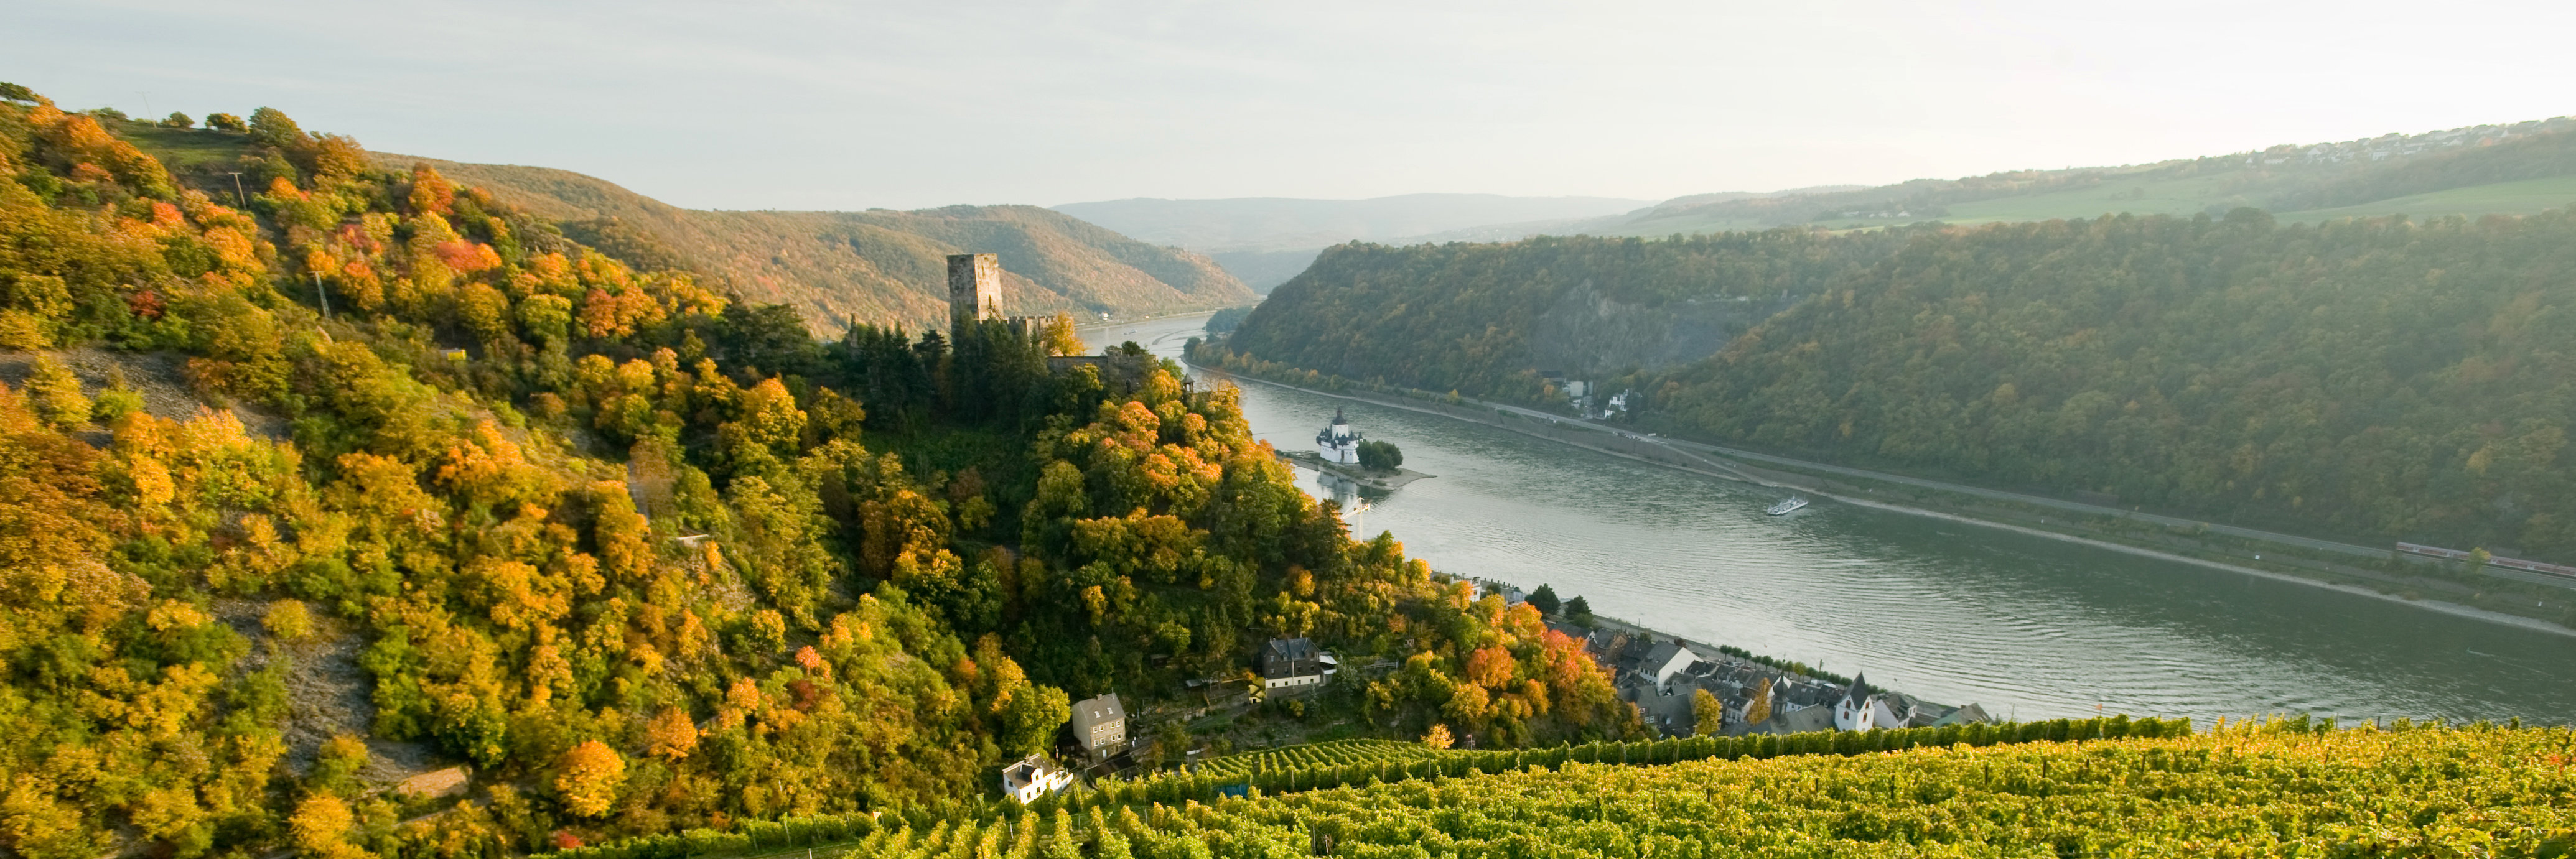 Vineyards and Pfalzgrafenstein Castle at Kaub, Romantic Rhine